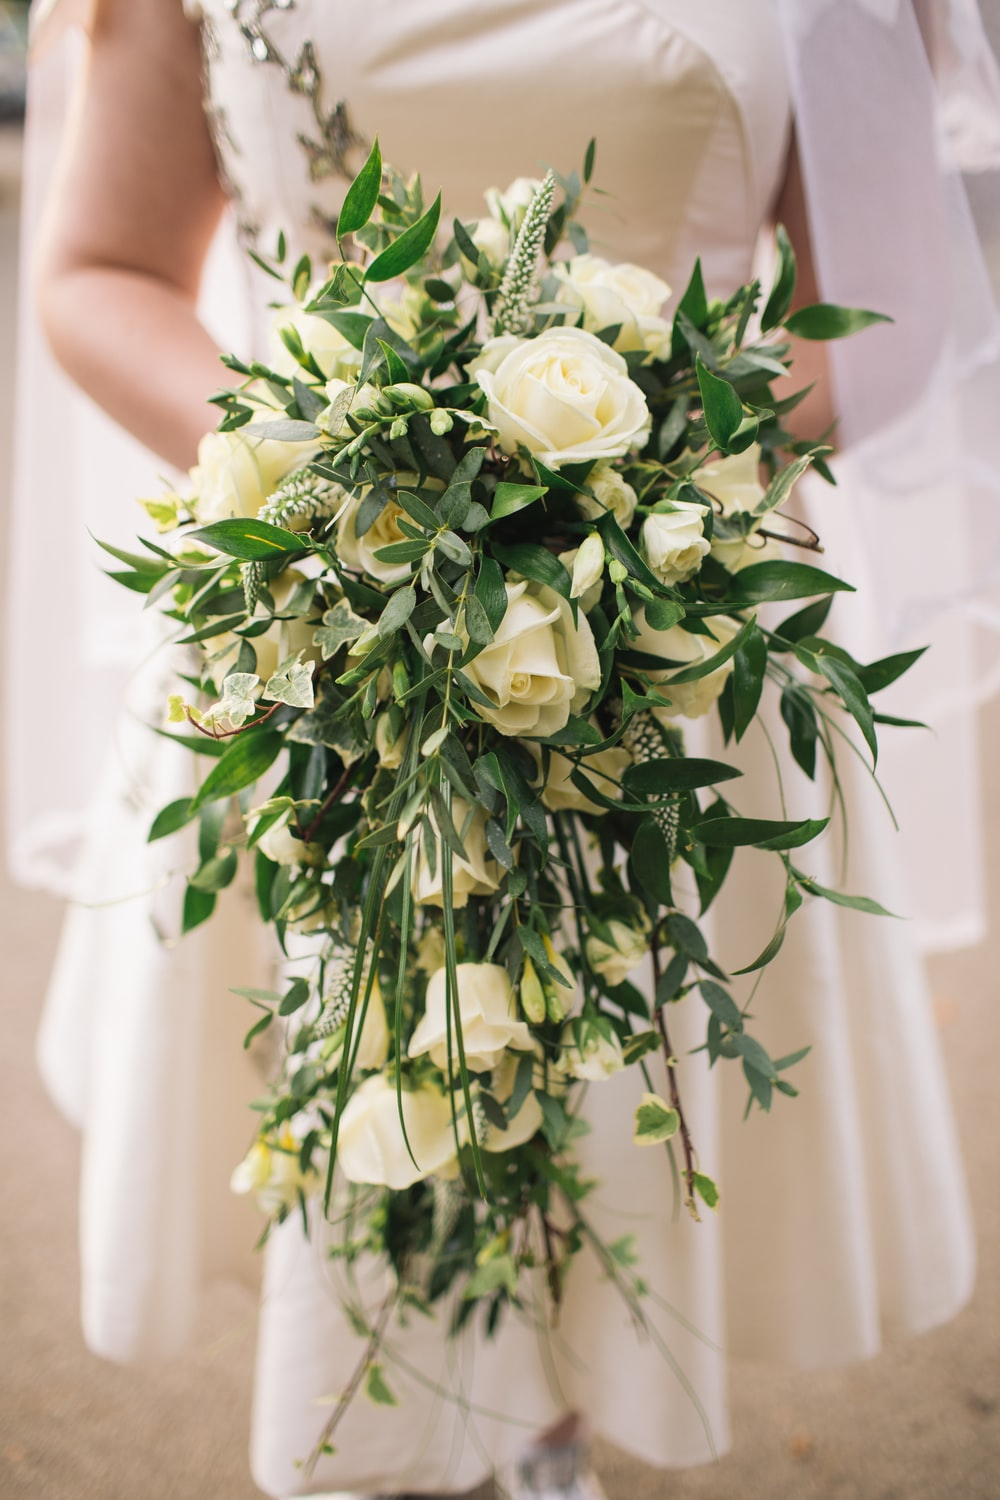 woman holding white roses bouquet